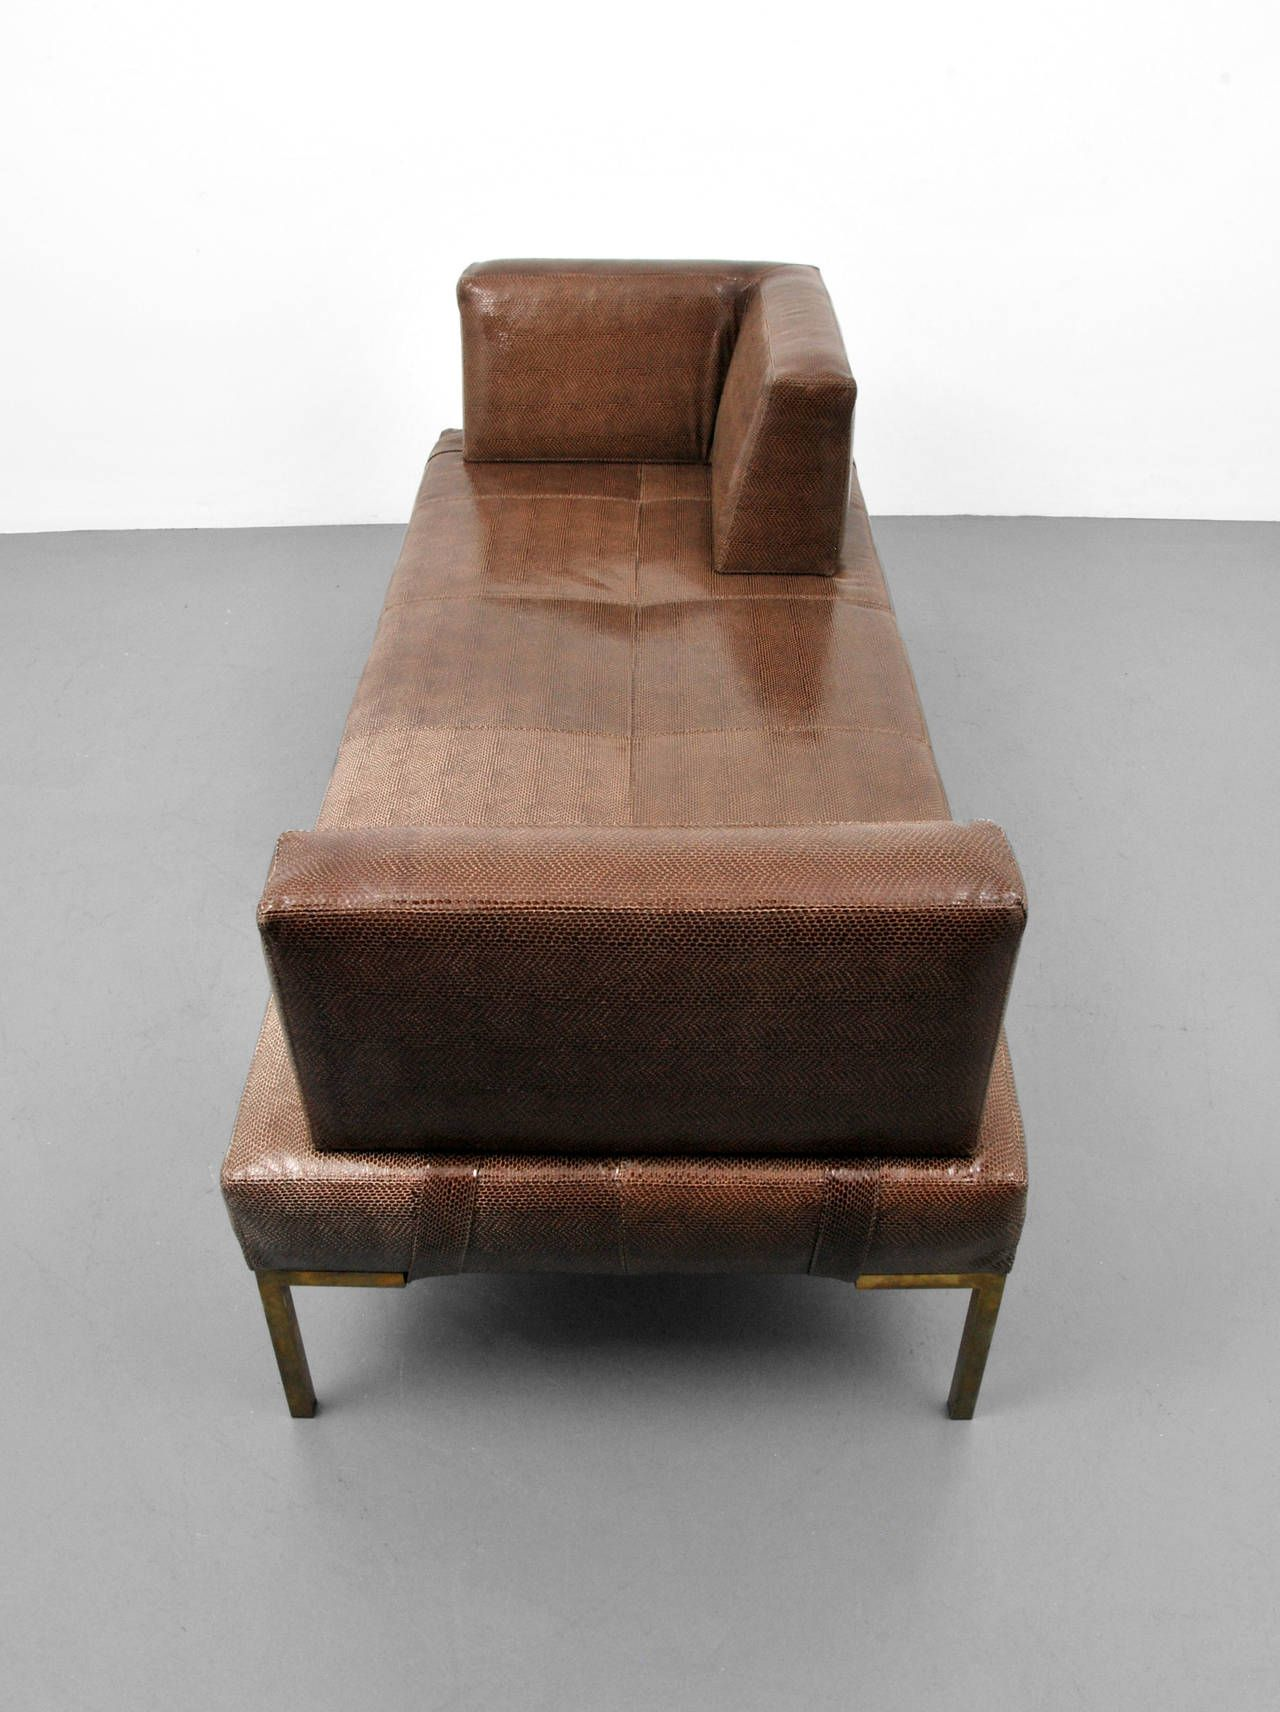 Antique And Vintage Chaise Longues 1 408 For Sale At 1stdibs Leather Daybed Chaise Chaise Lounge